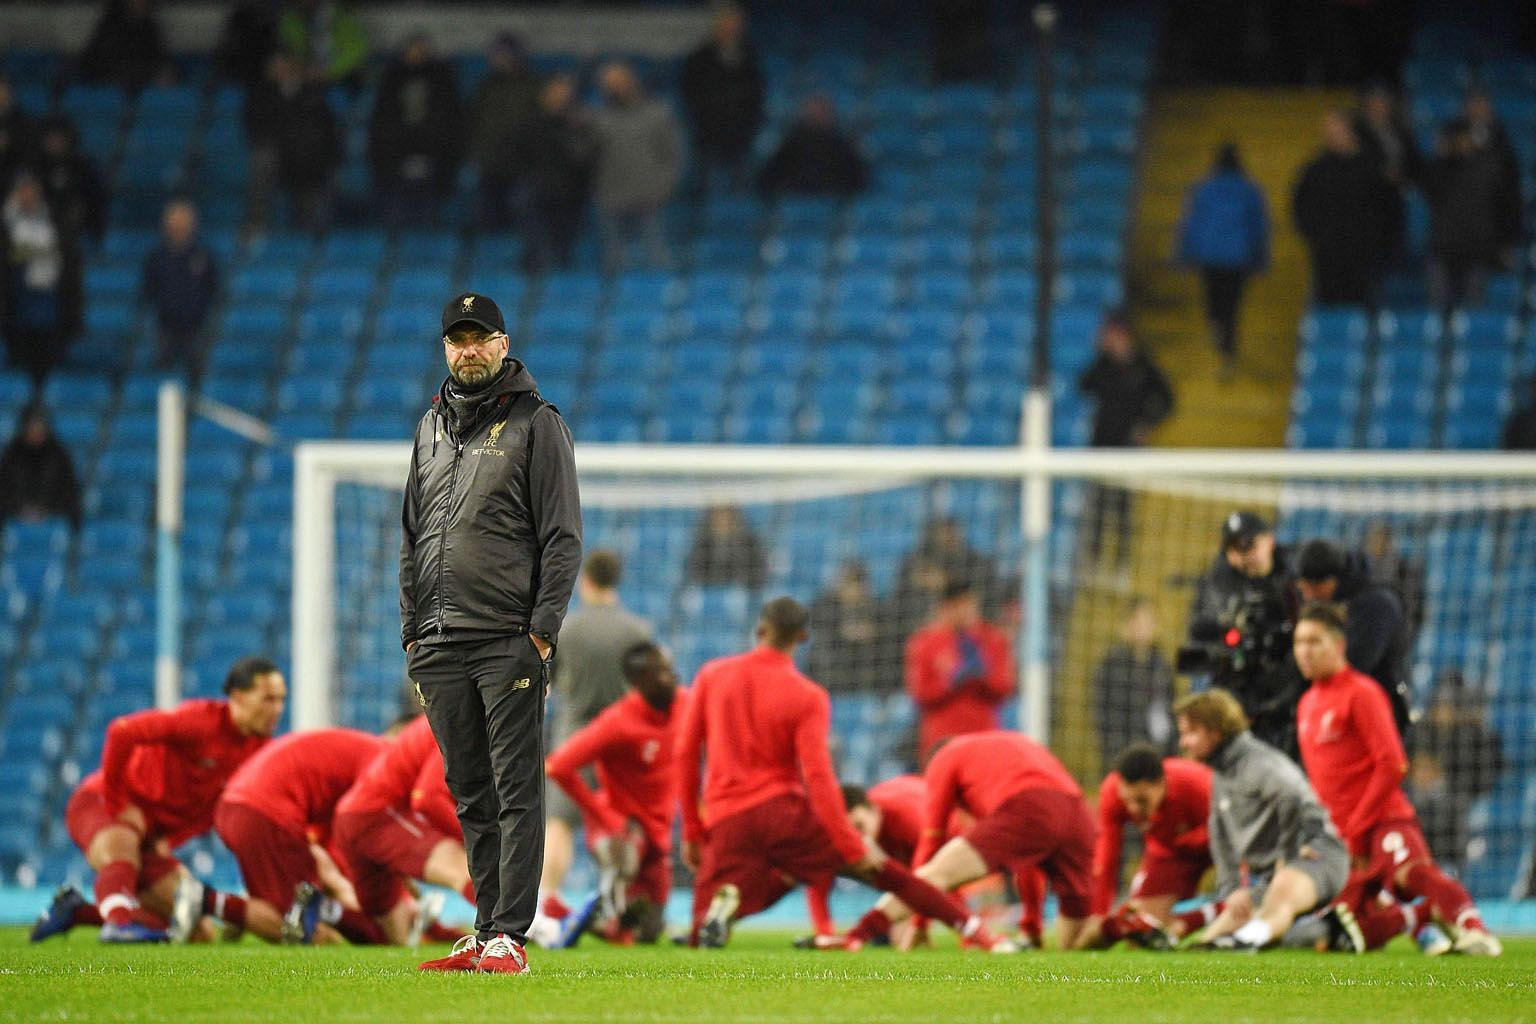 Liverpool manager Jurgen Klopp will recall most of his key men who were rested for their FA Cup third-round defeat at Wolves. But Dejan Lovren's injury leaves him short of options at centre back, with Joe Gomez and Joel Matip also sidelined.